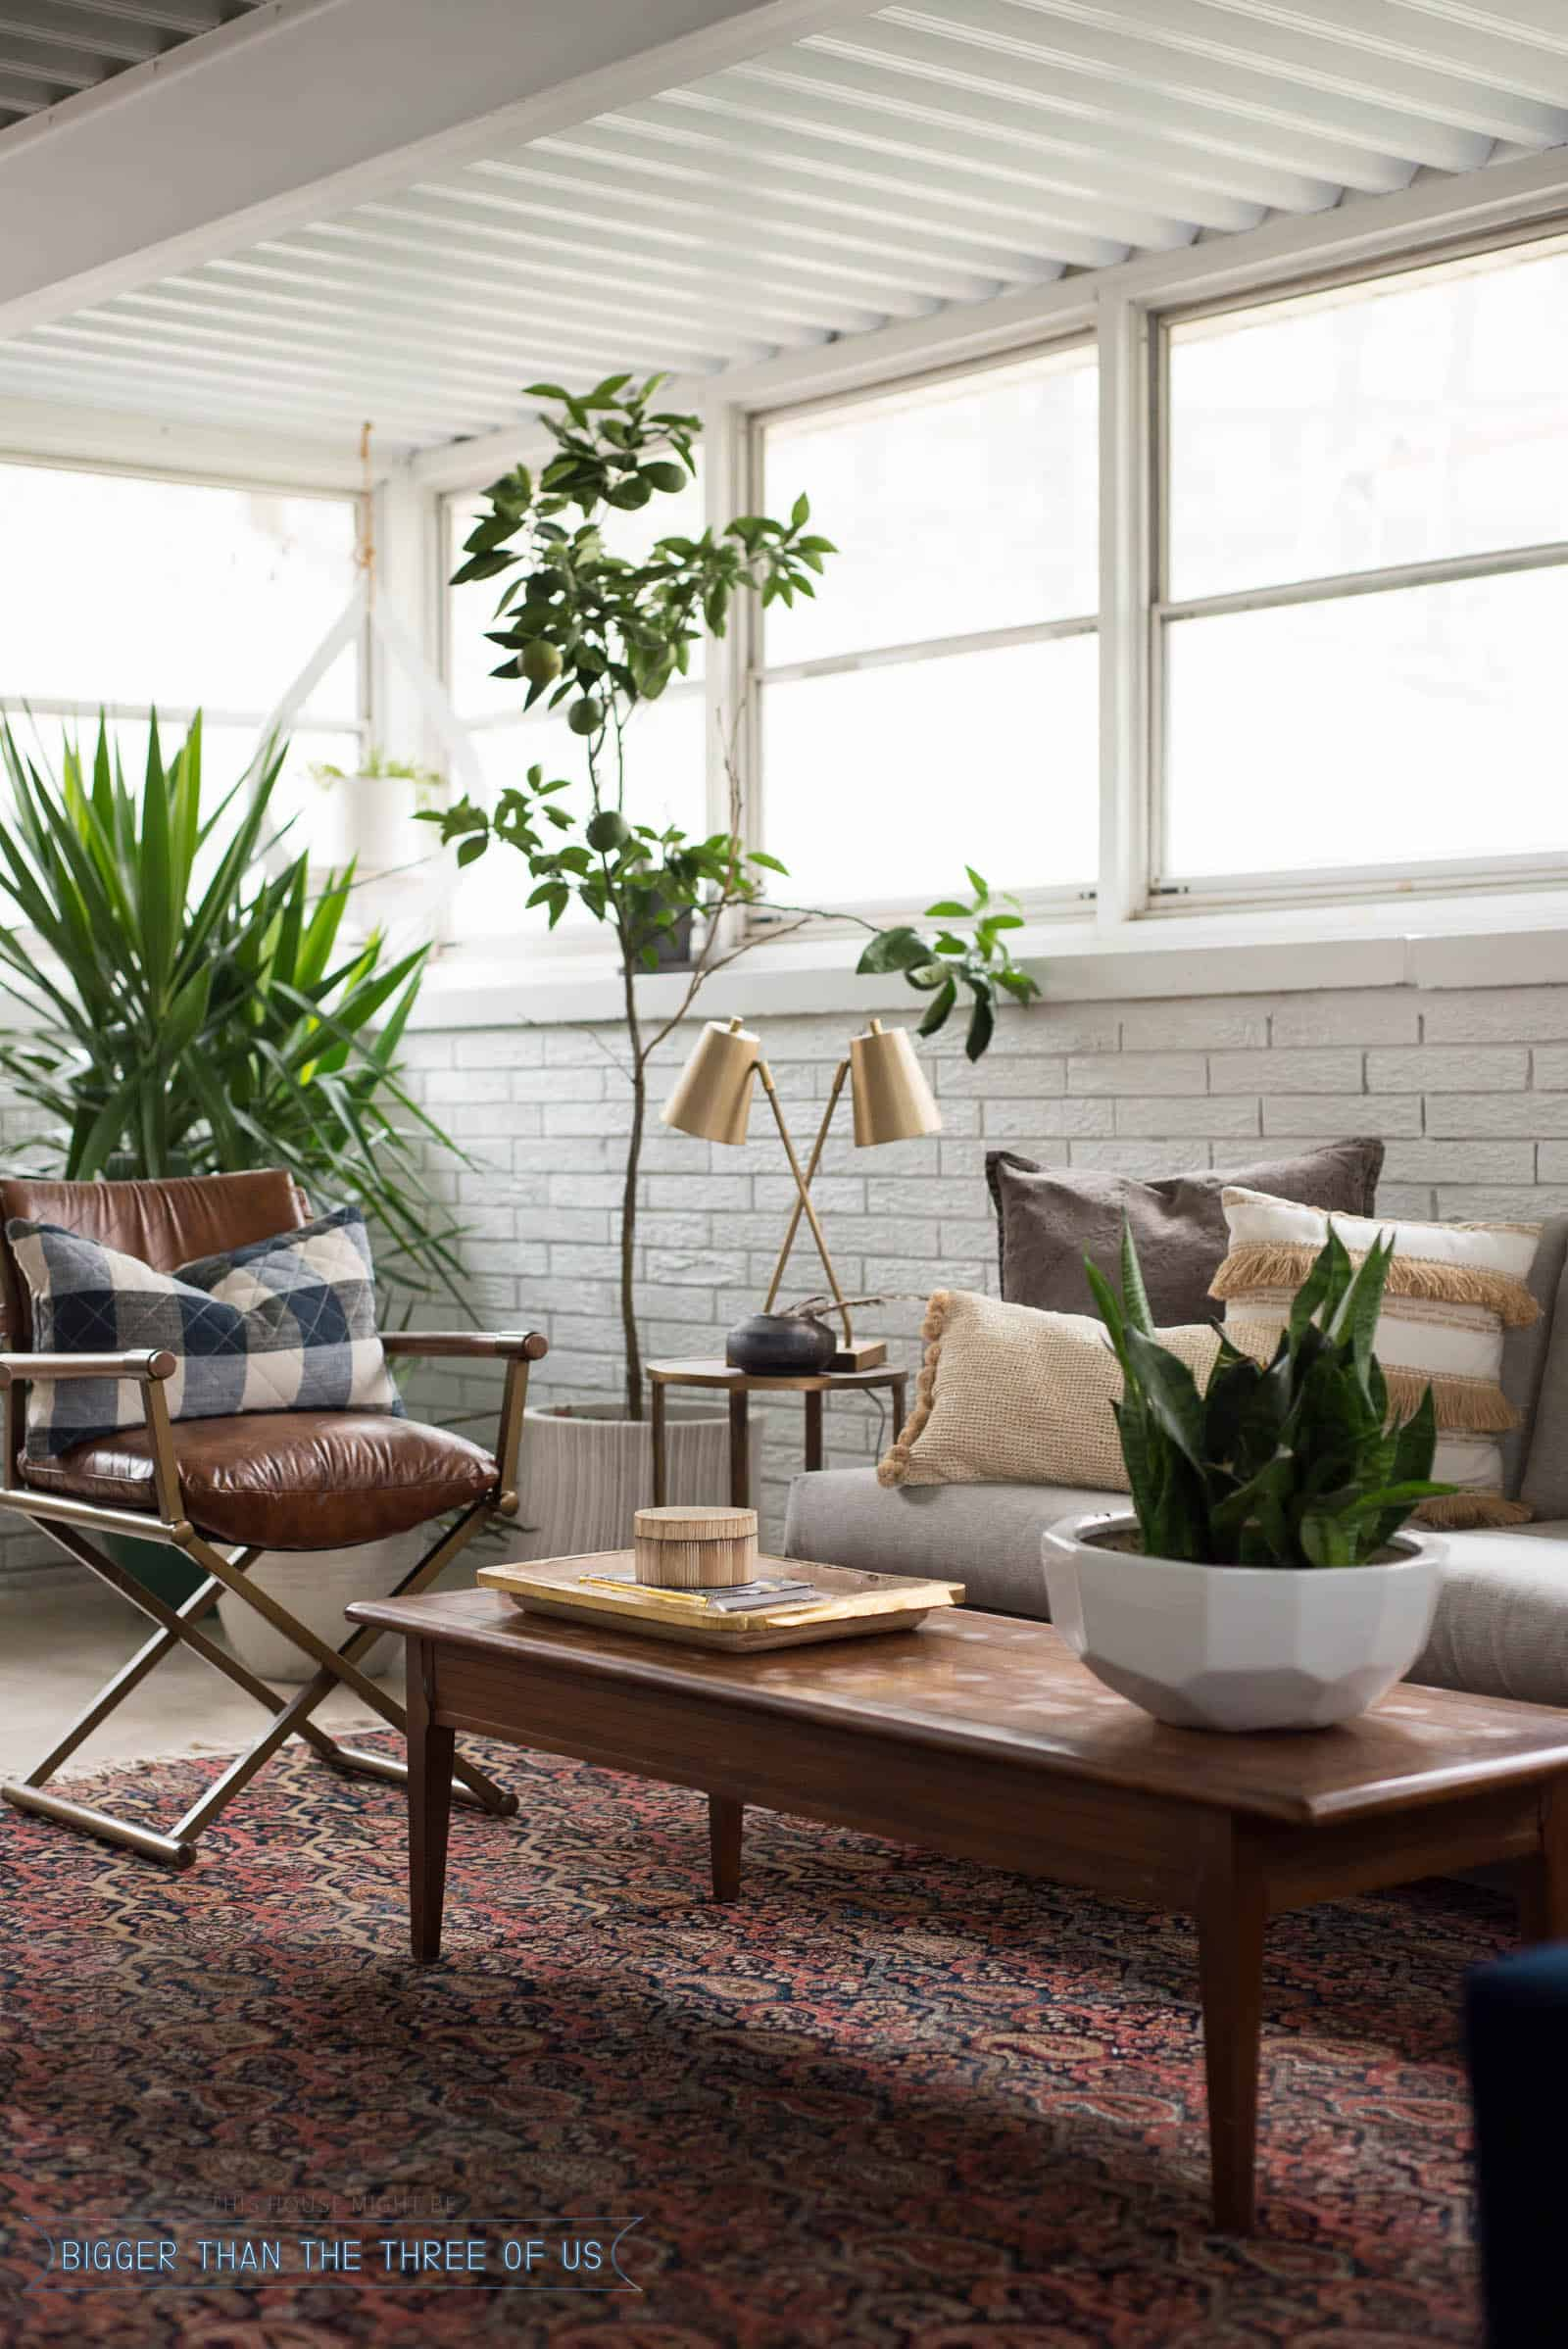 Sunroom Home Office Makeover with Tuesday Morning - Bigger Than